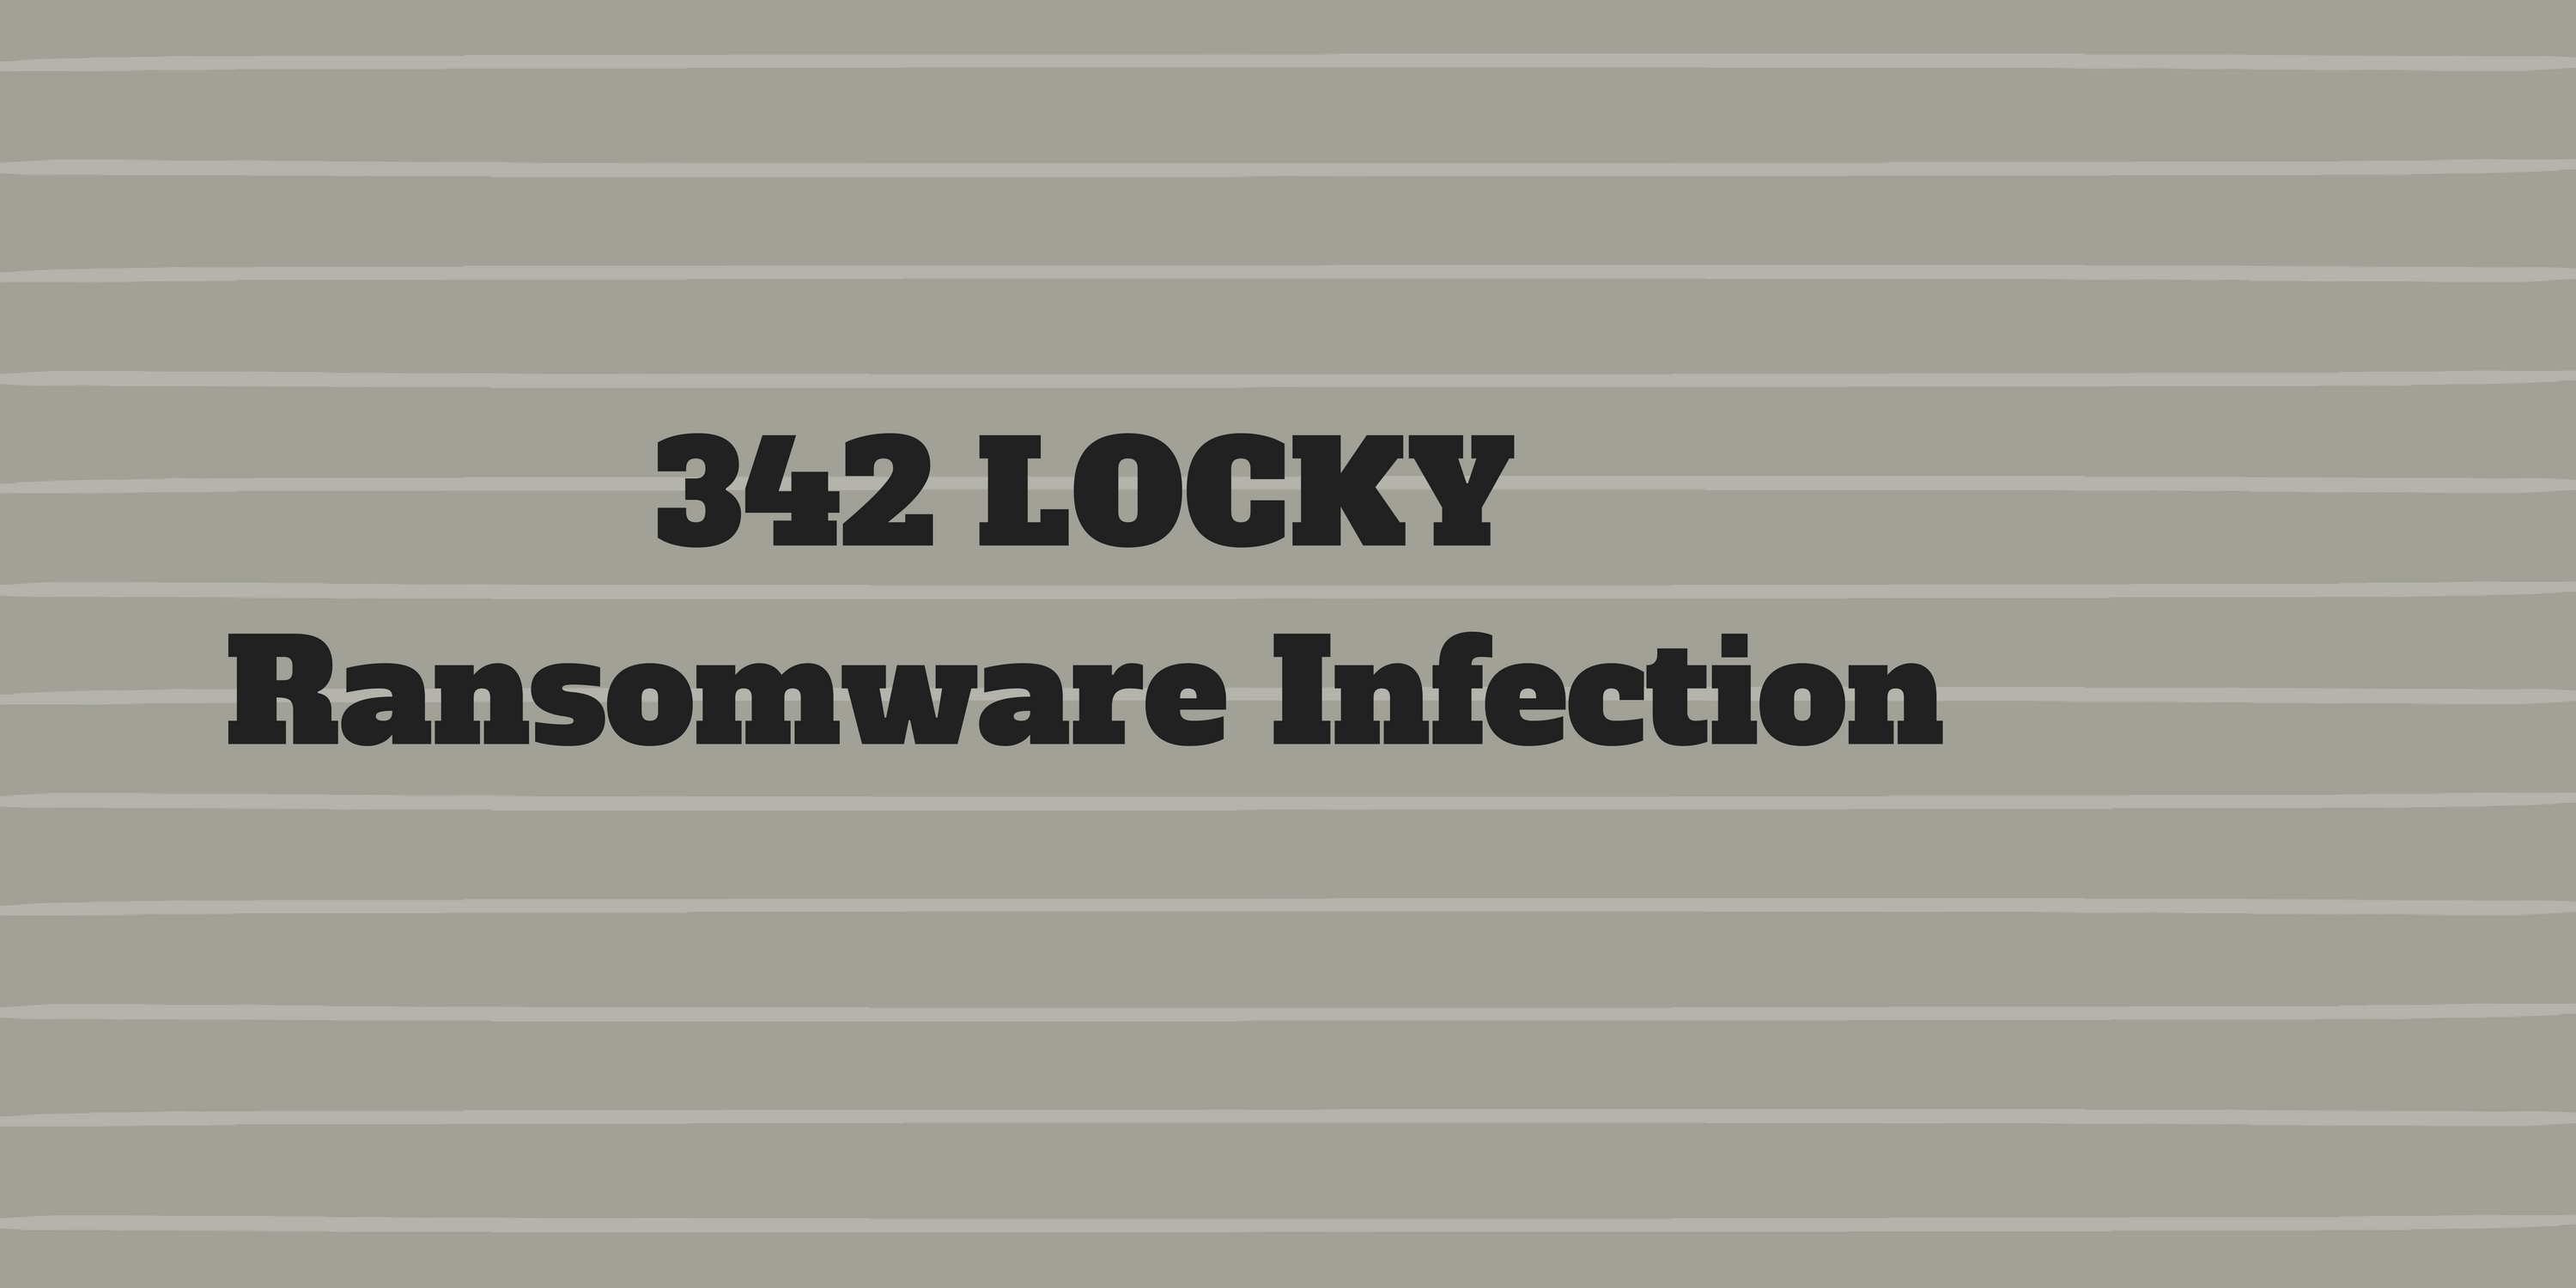 342 Locky Ransomware Removal Instructions – Fix Your Windows